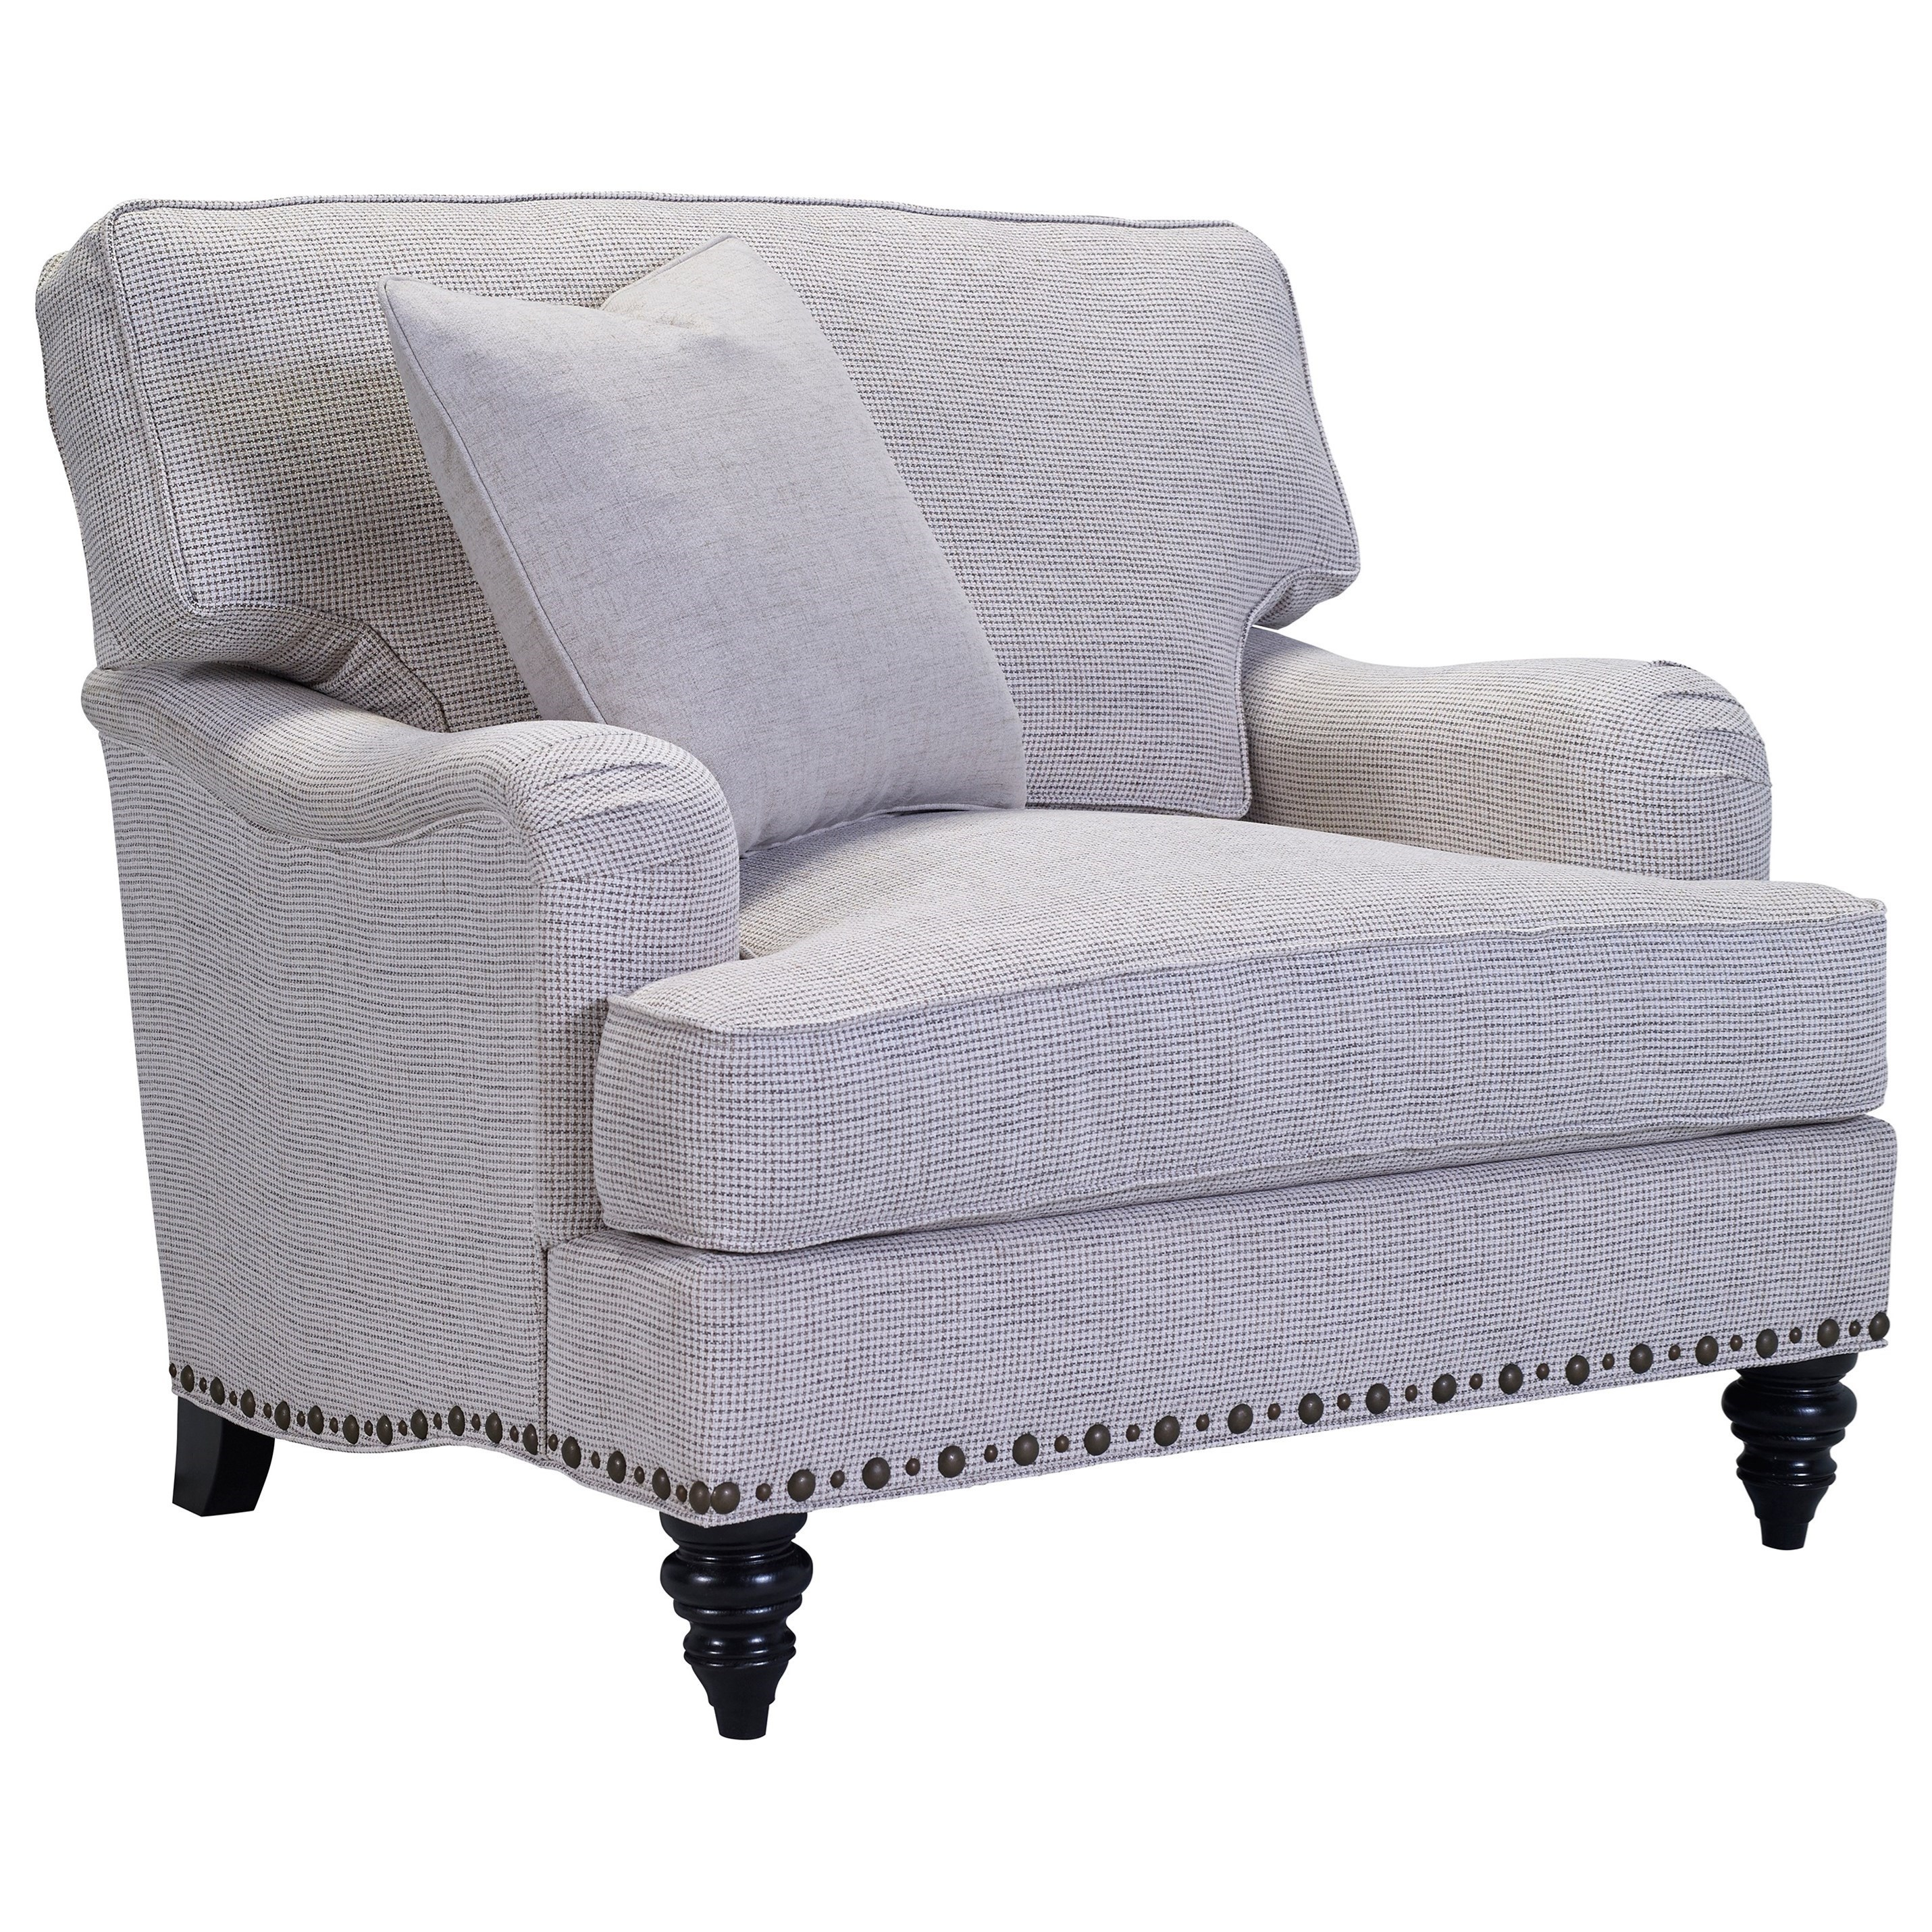 Broyhill Furniture Ester Chair & 1/2 - Item Number: 4283-0-4695-08